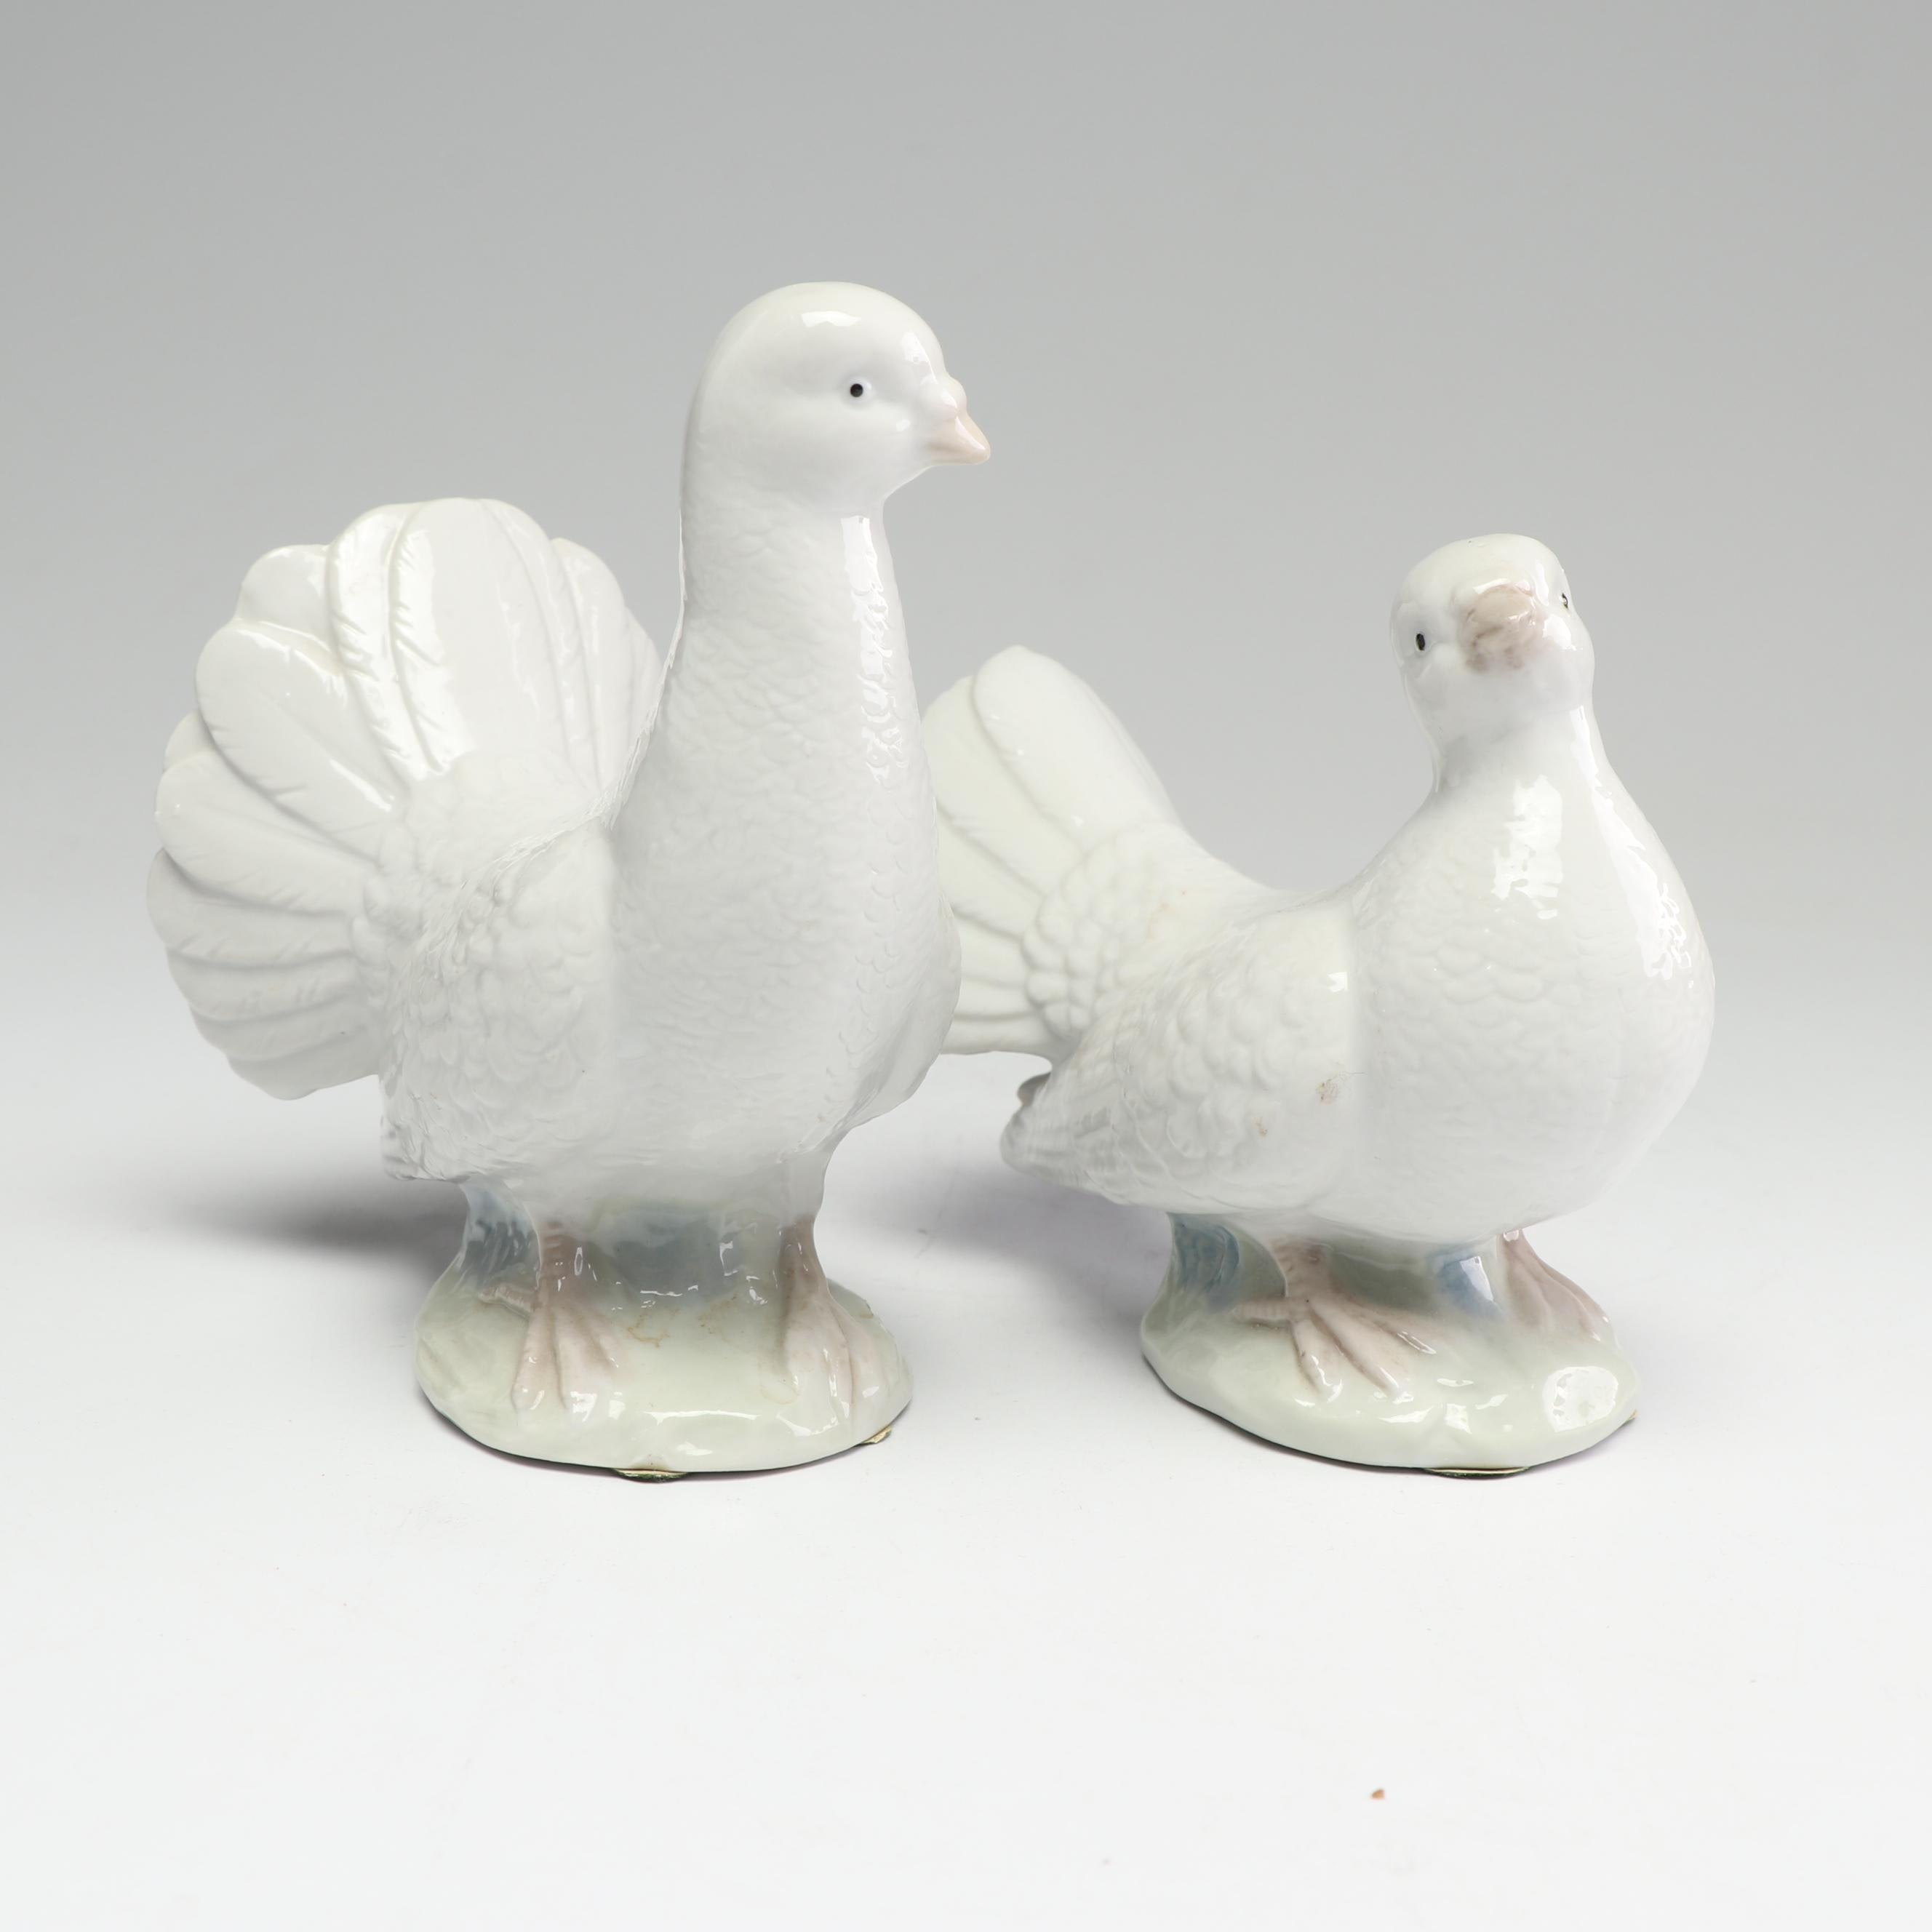 HOMCO Porcelain Dove Figurines, Mid to Late 20th Century